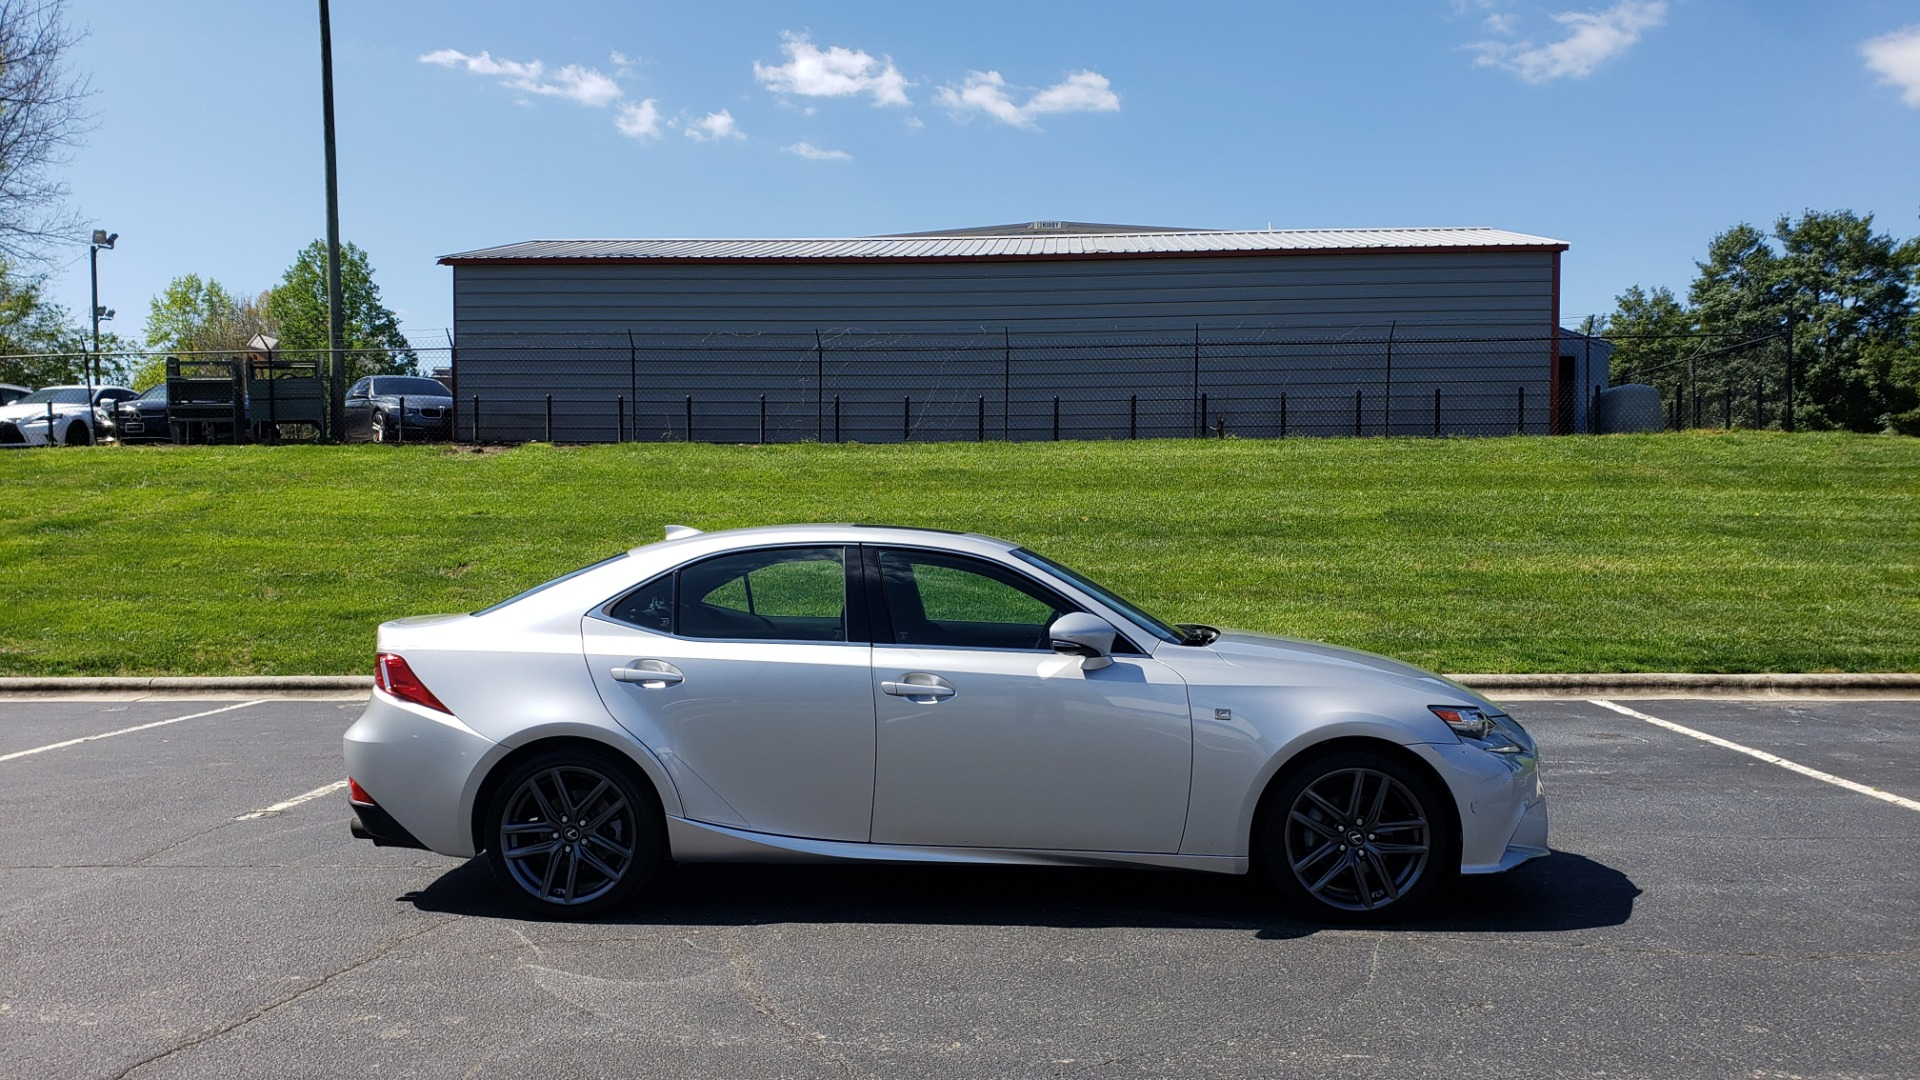 Used 2015 Lexus IS 250 F-SPORT / BSM / SUNROOF / VENT SEATS / REARVIEW for sale Sold at Formula Imports in Charlotte NC 28227 5